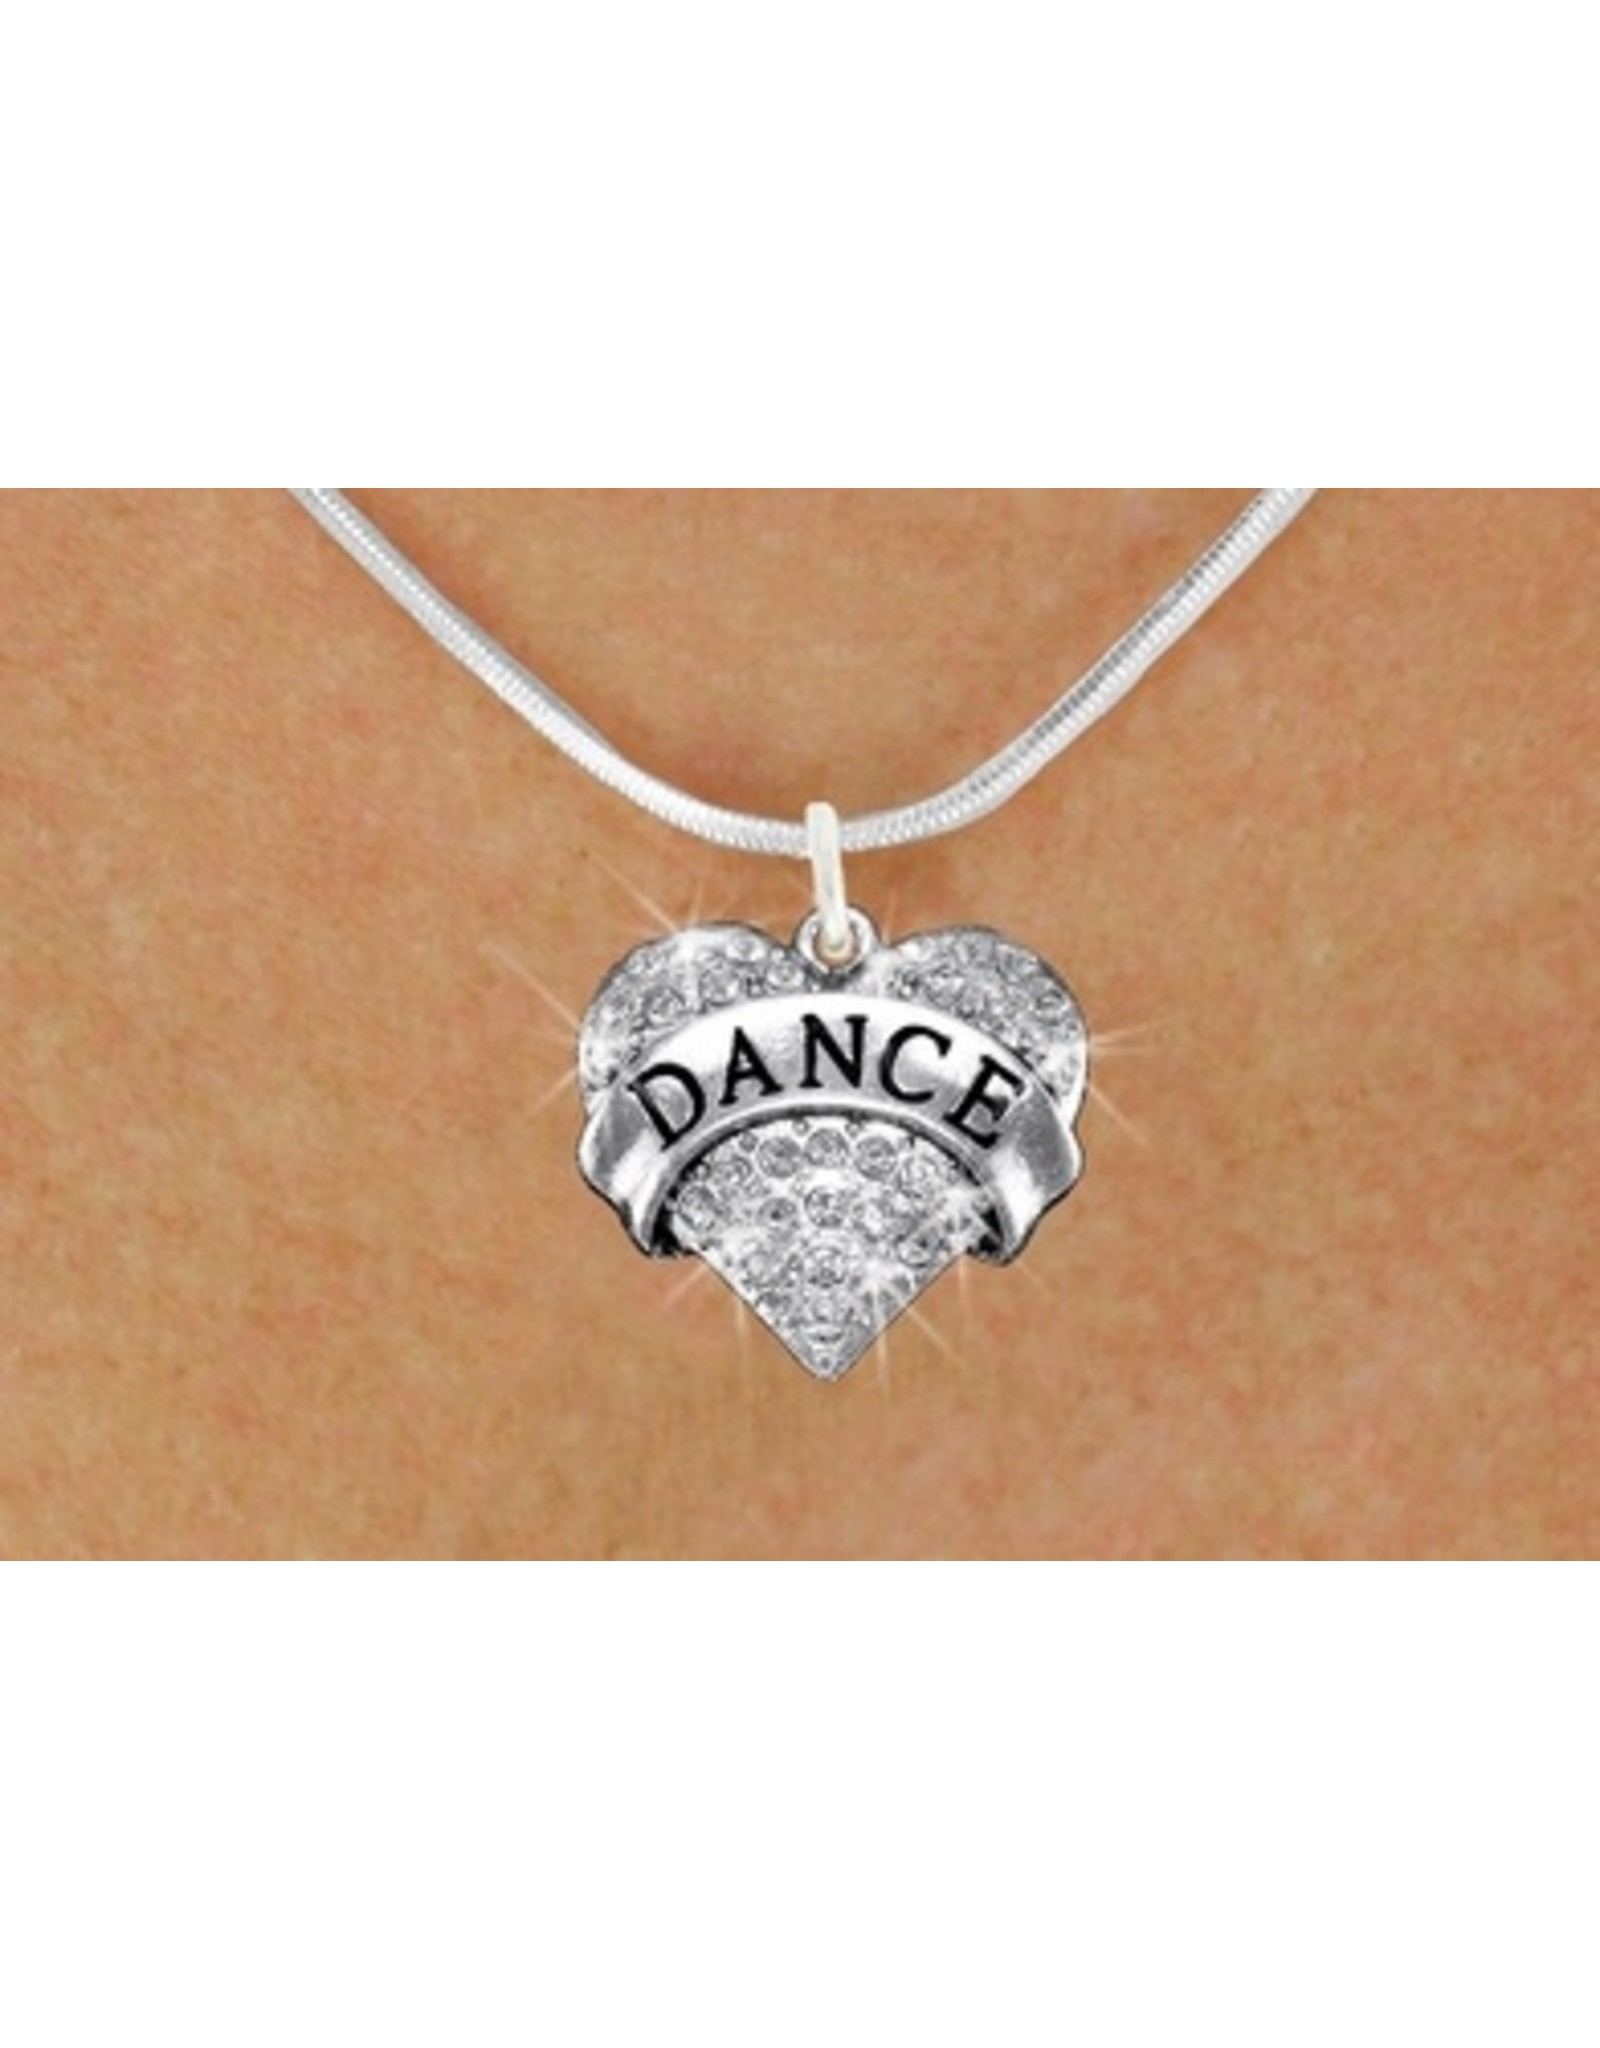 Dance Crystal Heart Charm & Necklace